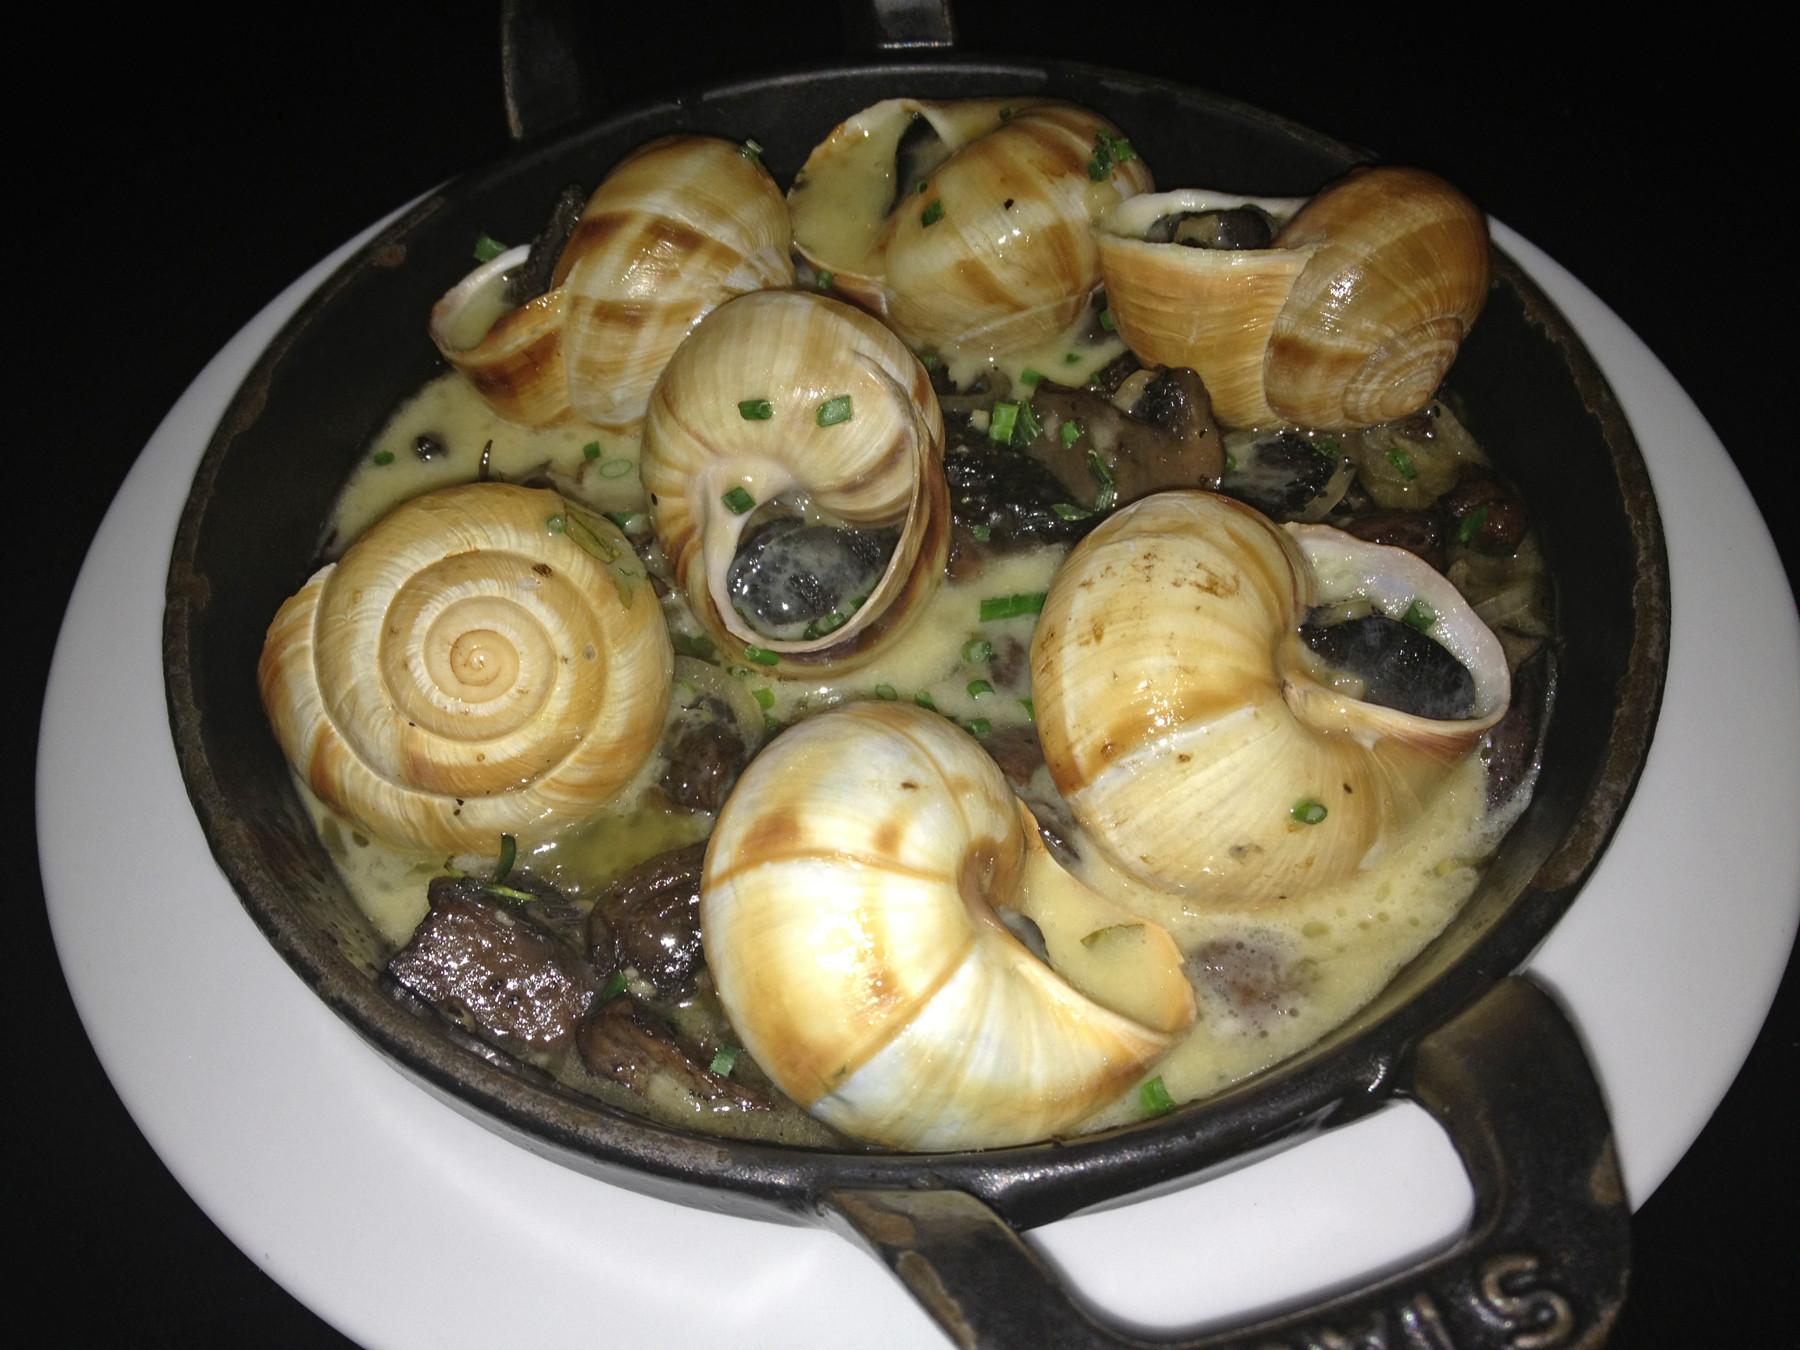 The escargots, with garlicky butter and thick, sautéed portobello mushroom slices, are a savory delicacy. They're served with local French Pantry crusty bread, perfect for sopping up the extra garlic butter.